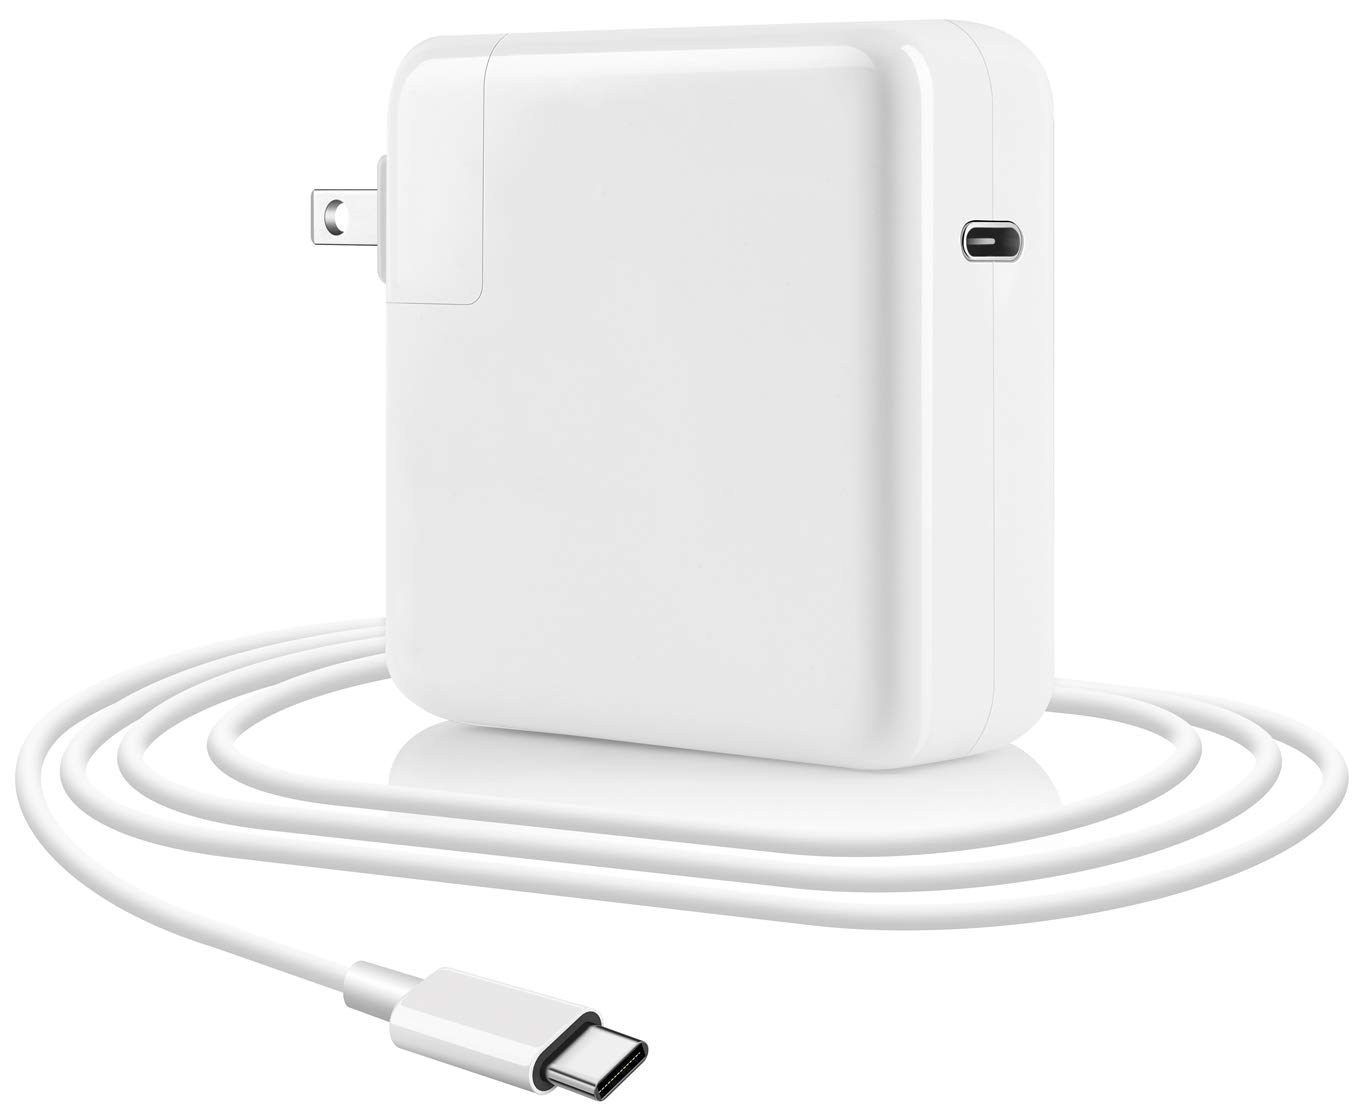 61w USB C Power Adapter Type C Wall Charger